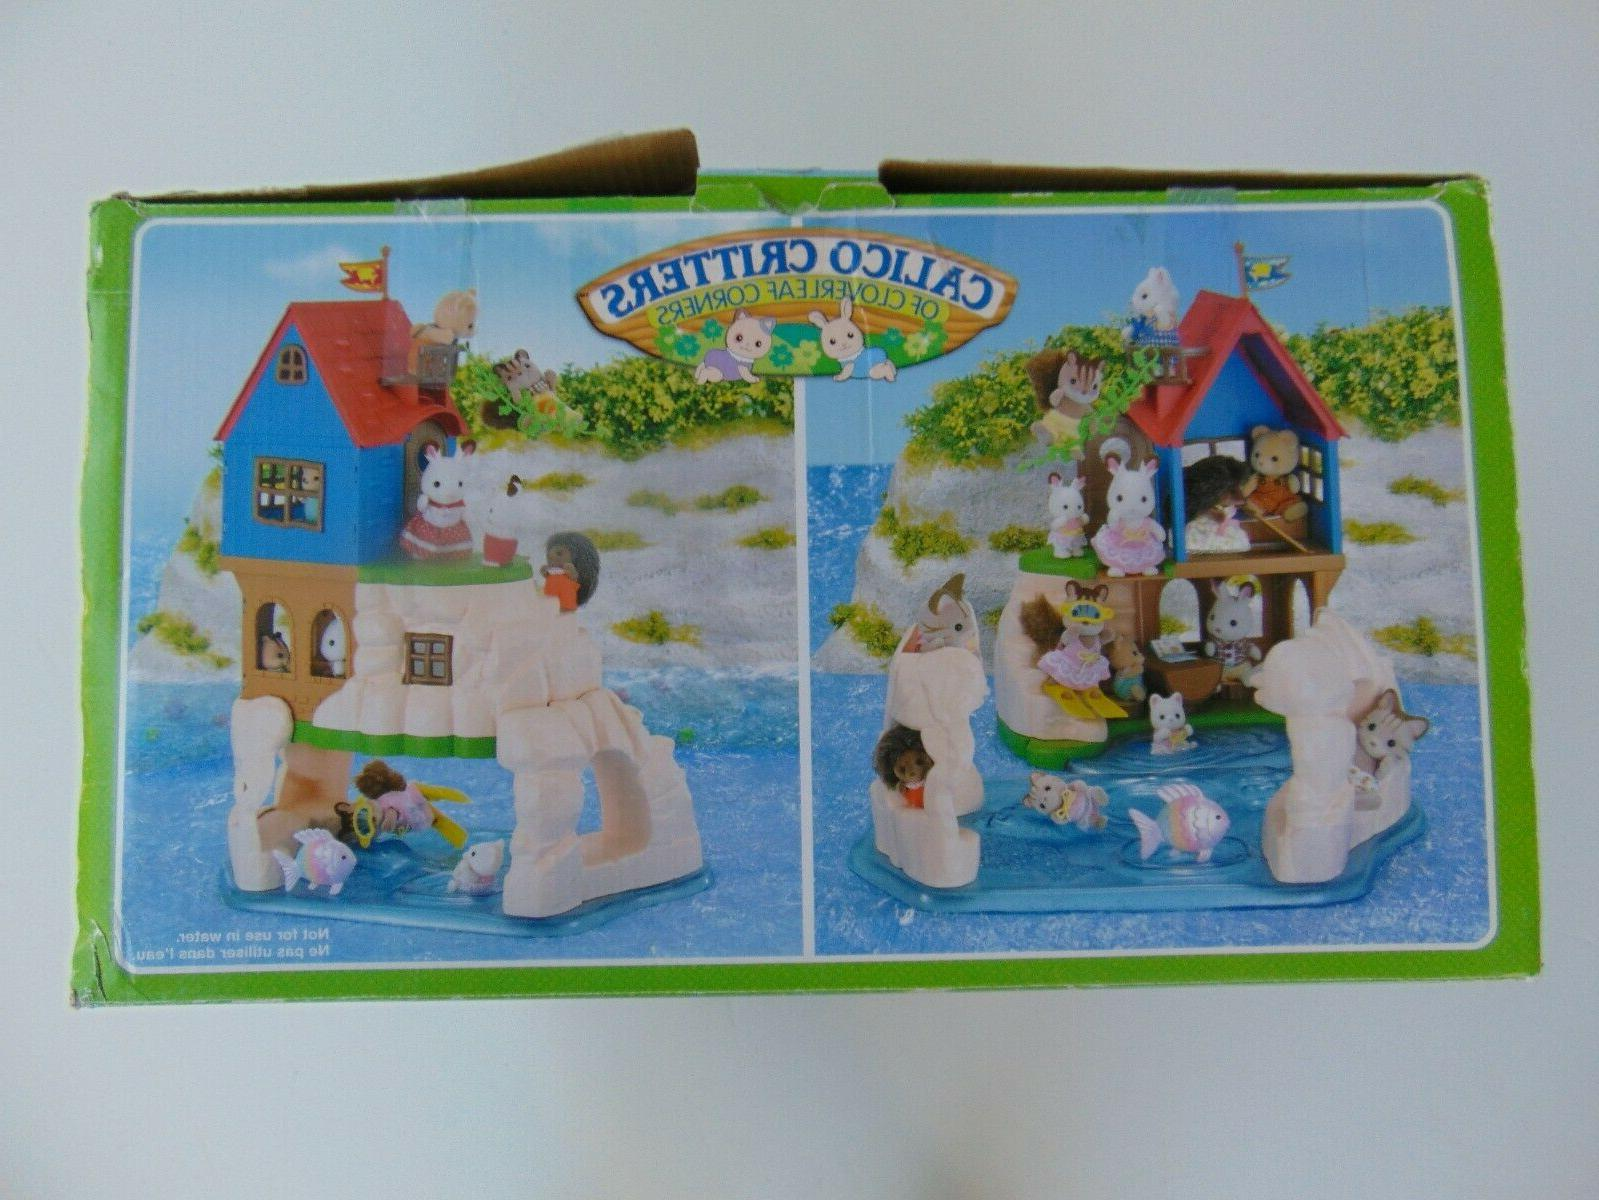 Calico Critters Playhouse Brand New Sealed